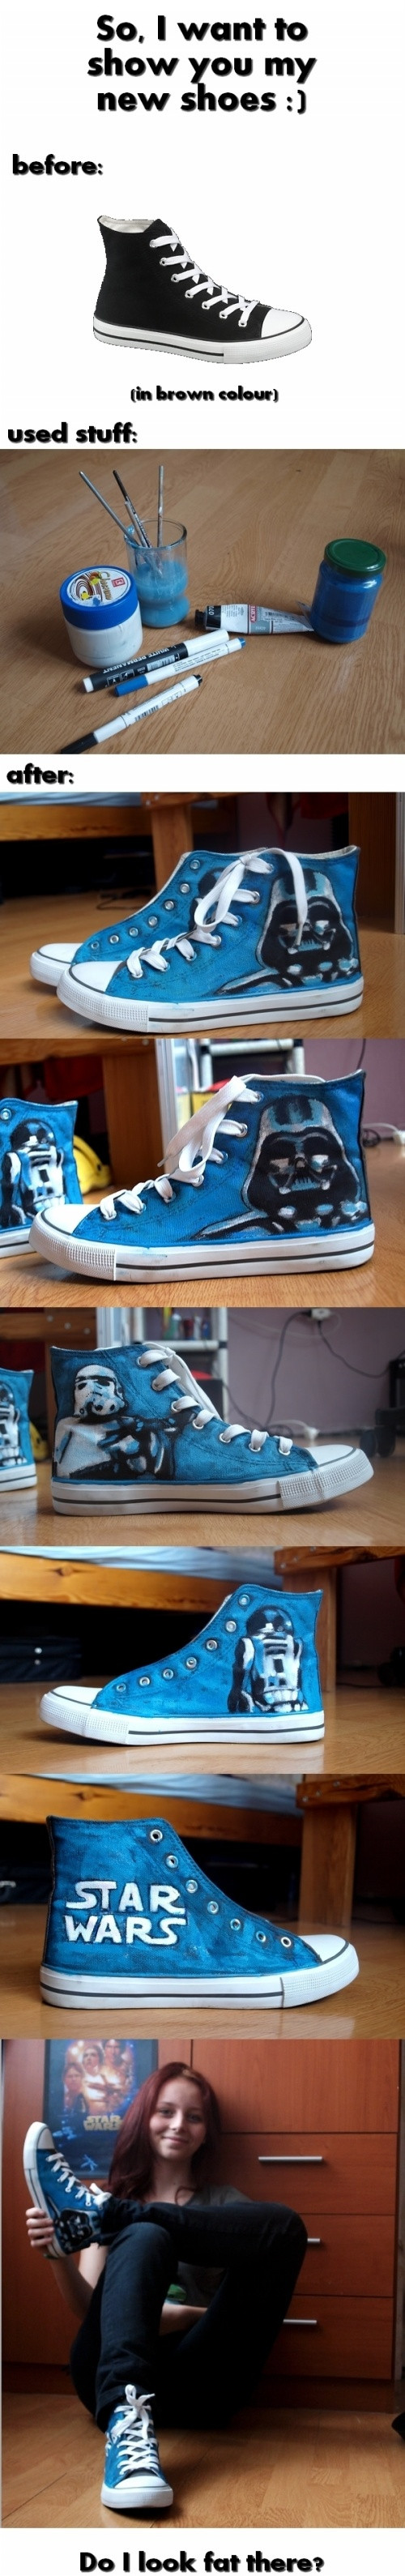 Look At My New Shoes!